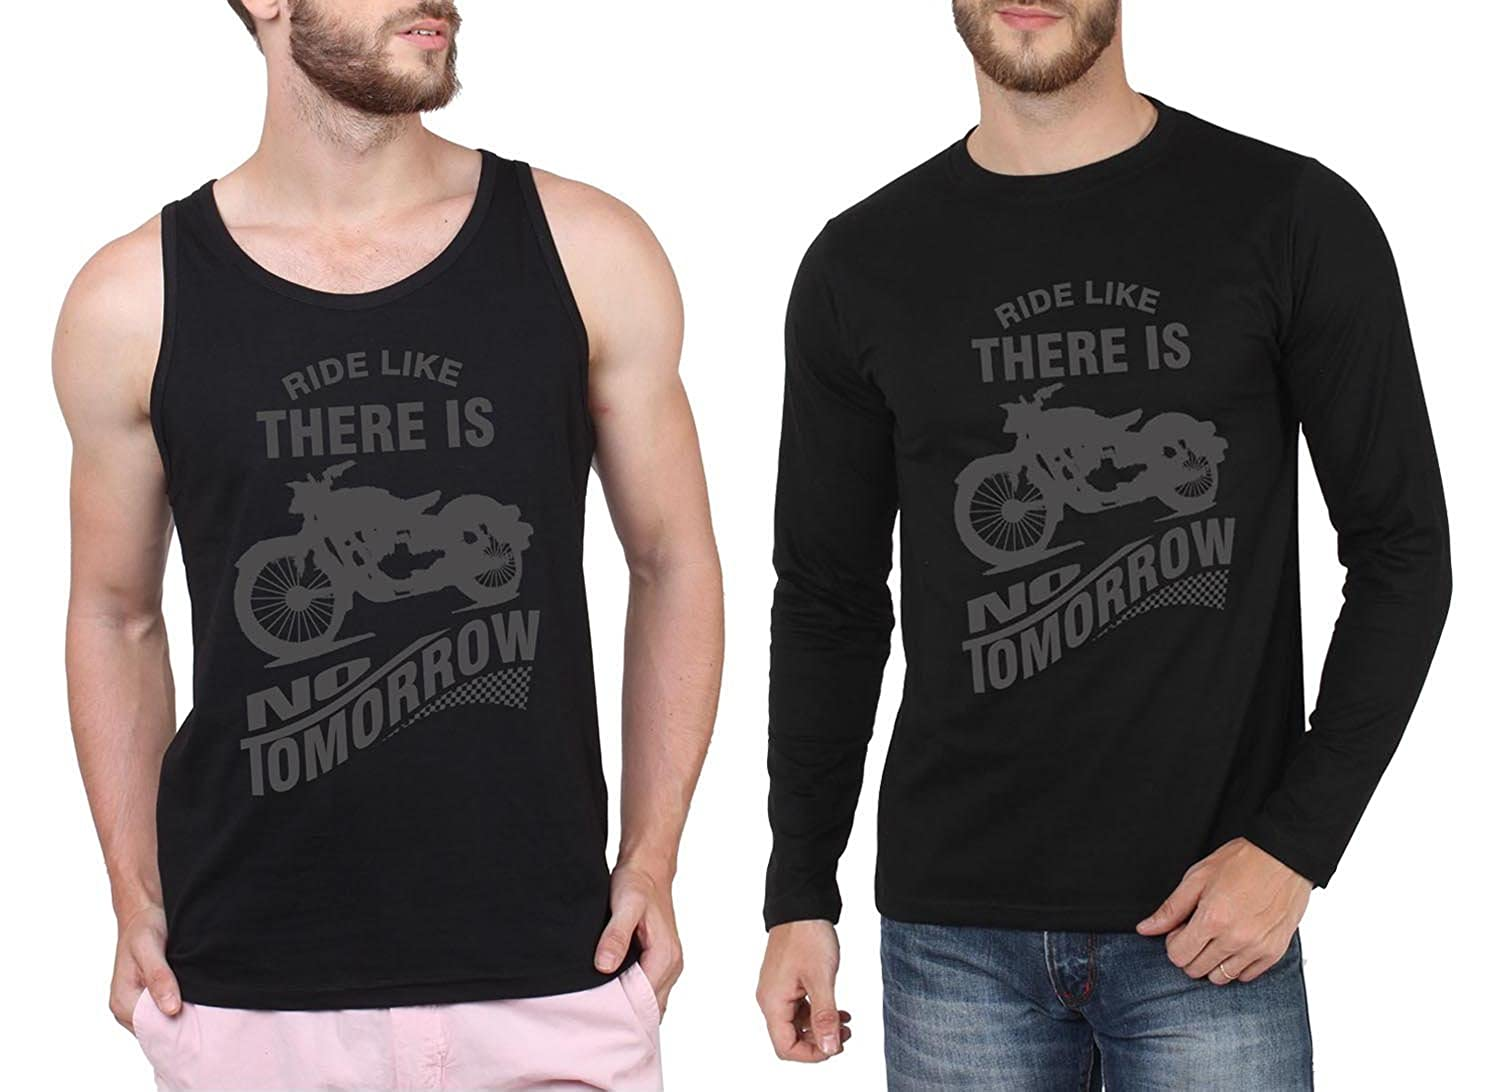 2a724b222eee Say It Loud Men's Printed Round Neck T-Shirts (Pack of 2)(C02RIDELIKEBLACKG4RIDELIKEBLACK-S_Small)  (Small) (X-Large): Amazon.in: Clothing & Accessories